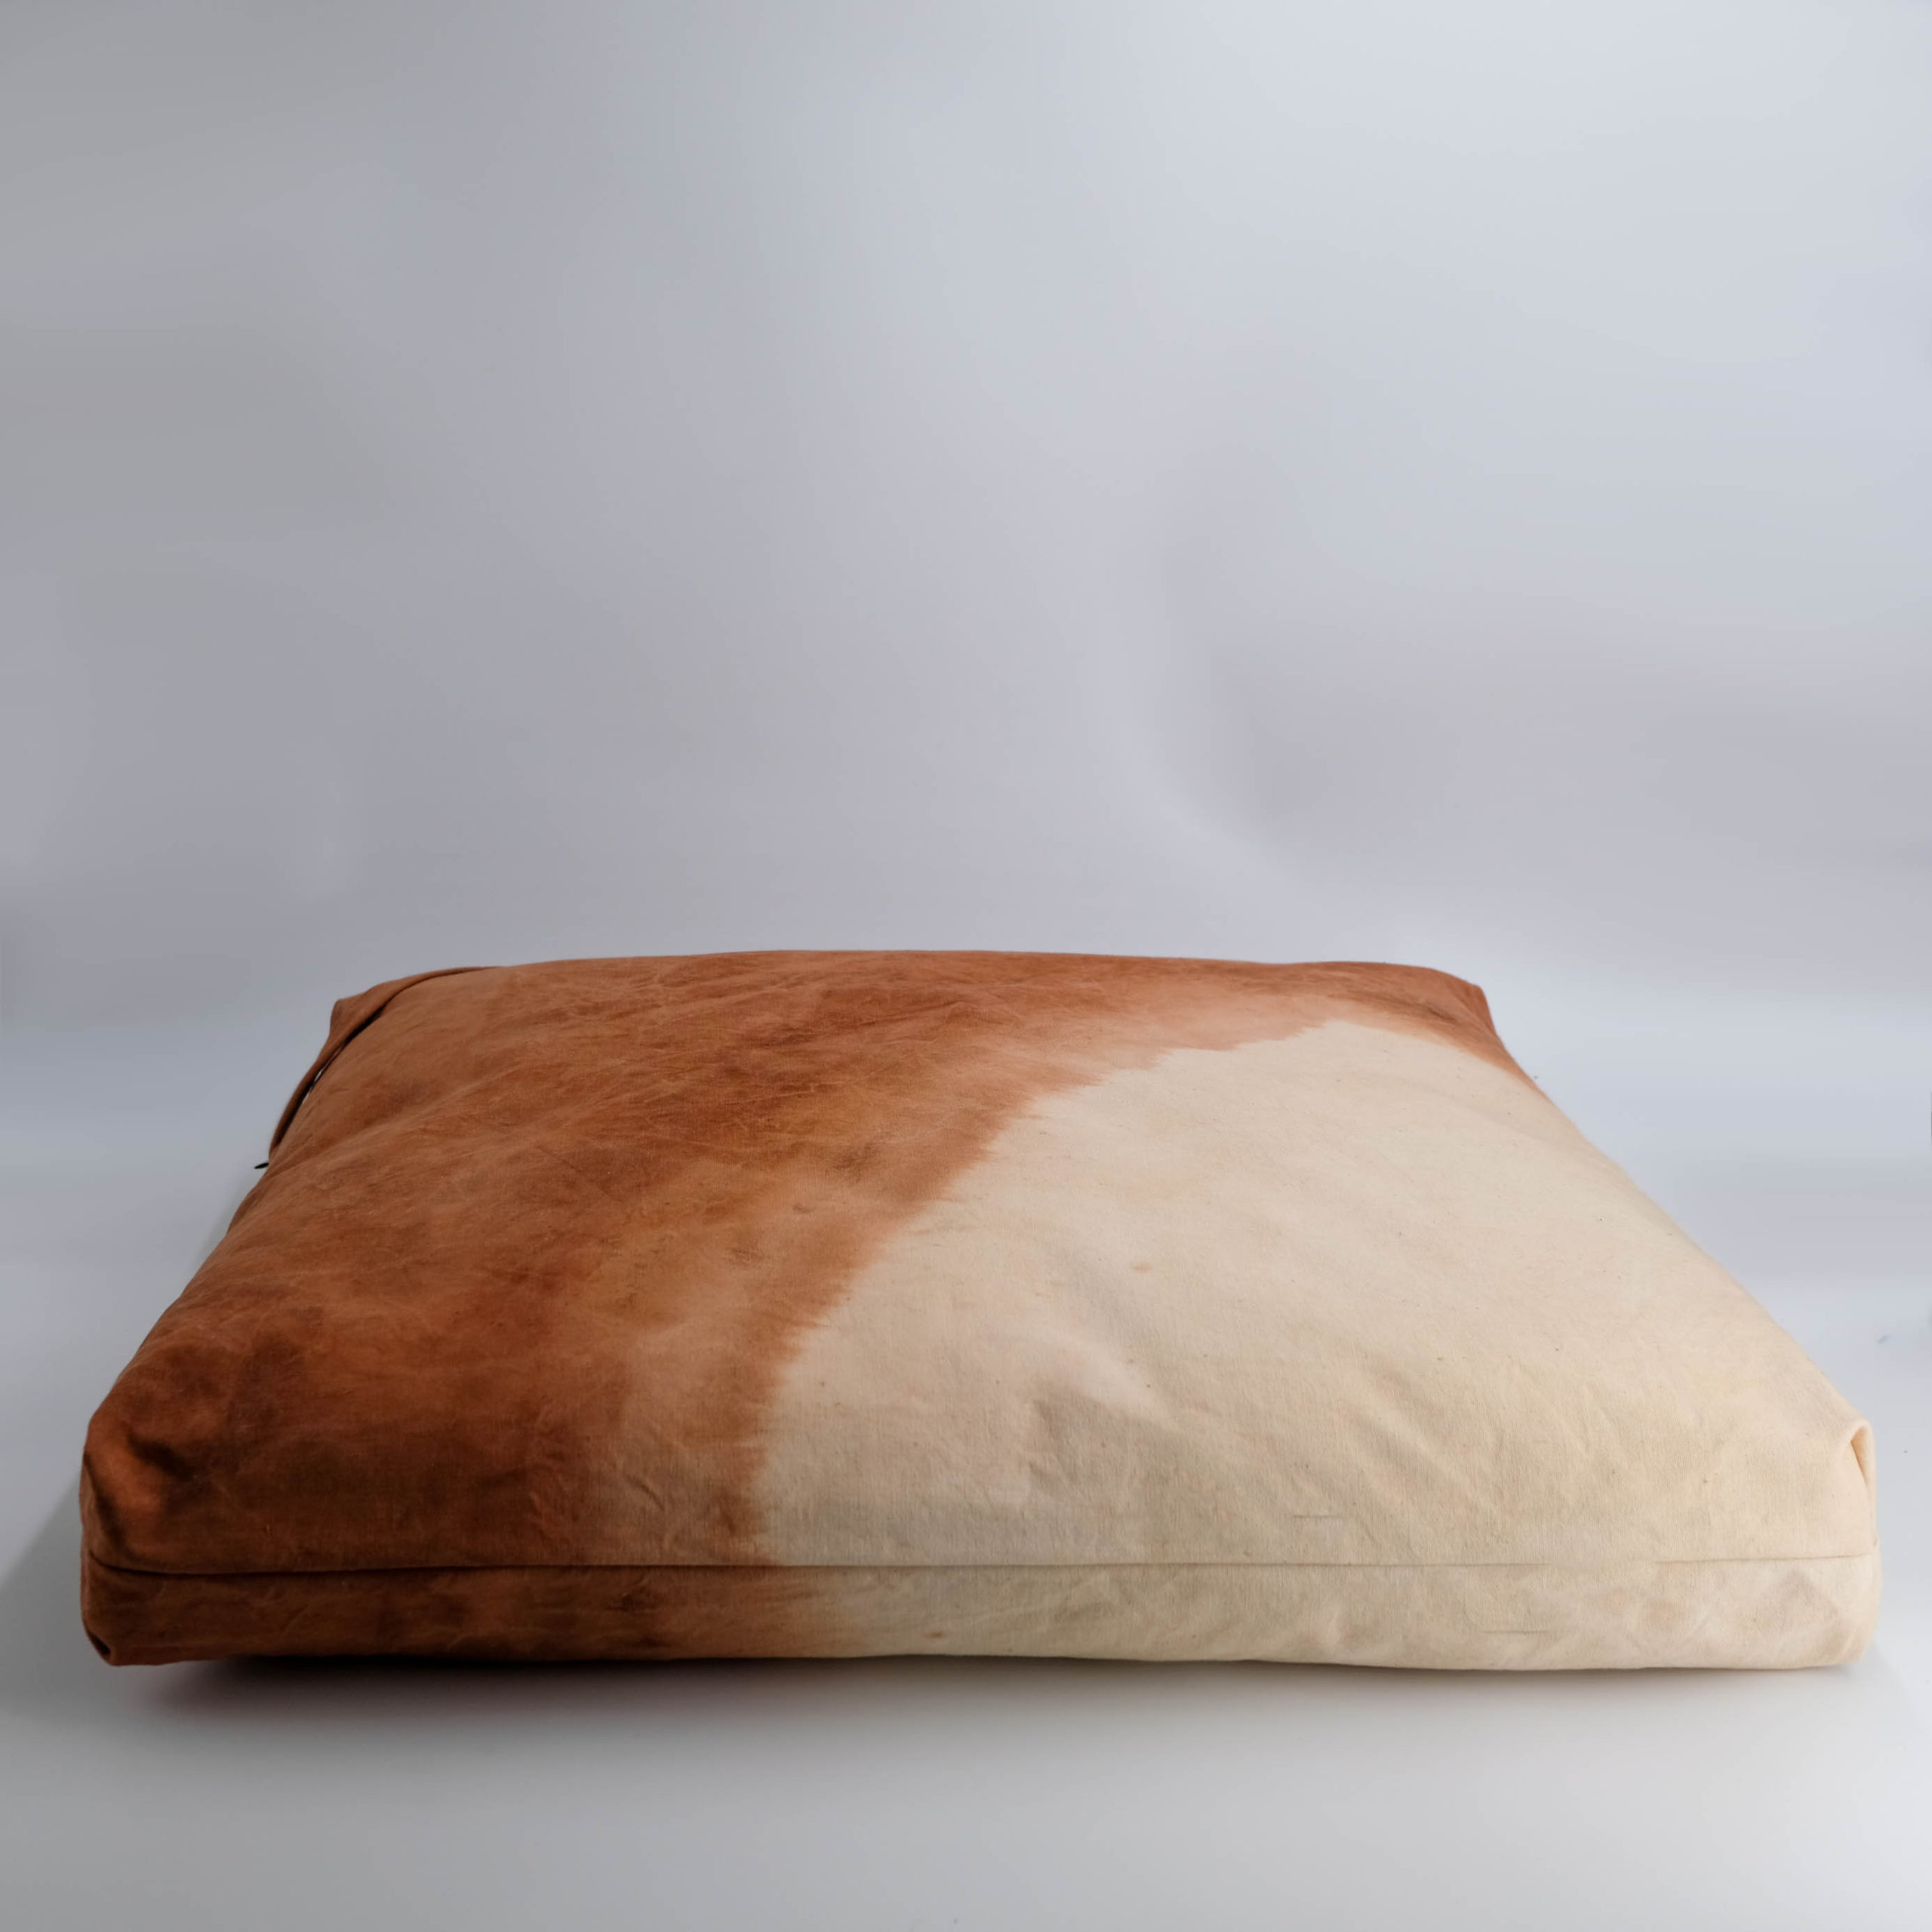 floor cushion naturally dyed sustainable organic cotton desert sunset side view